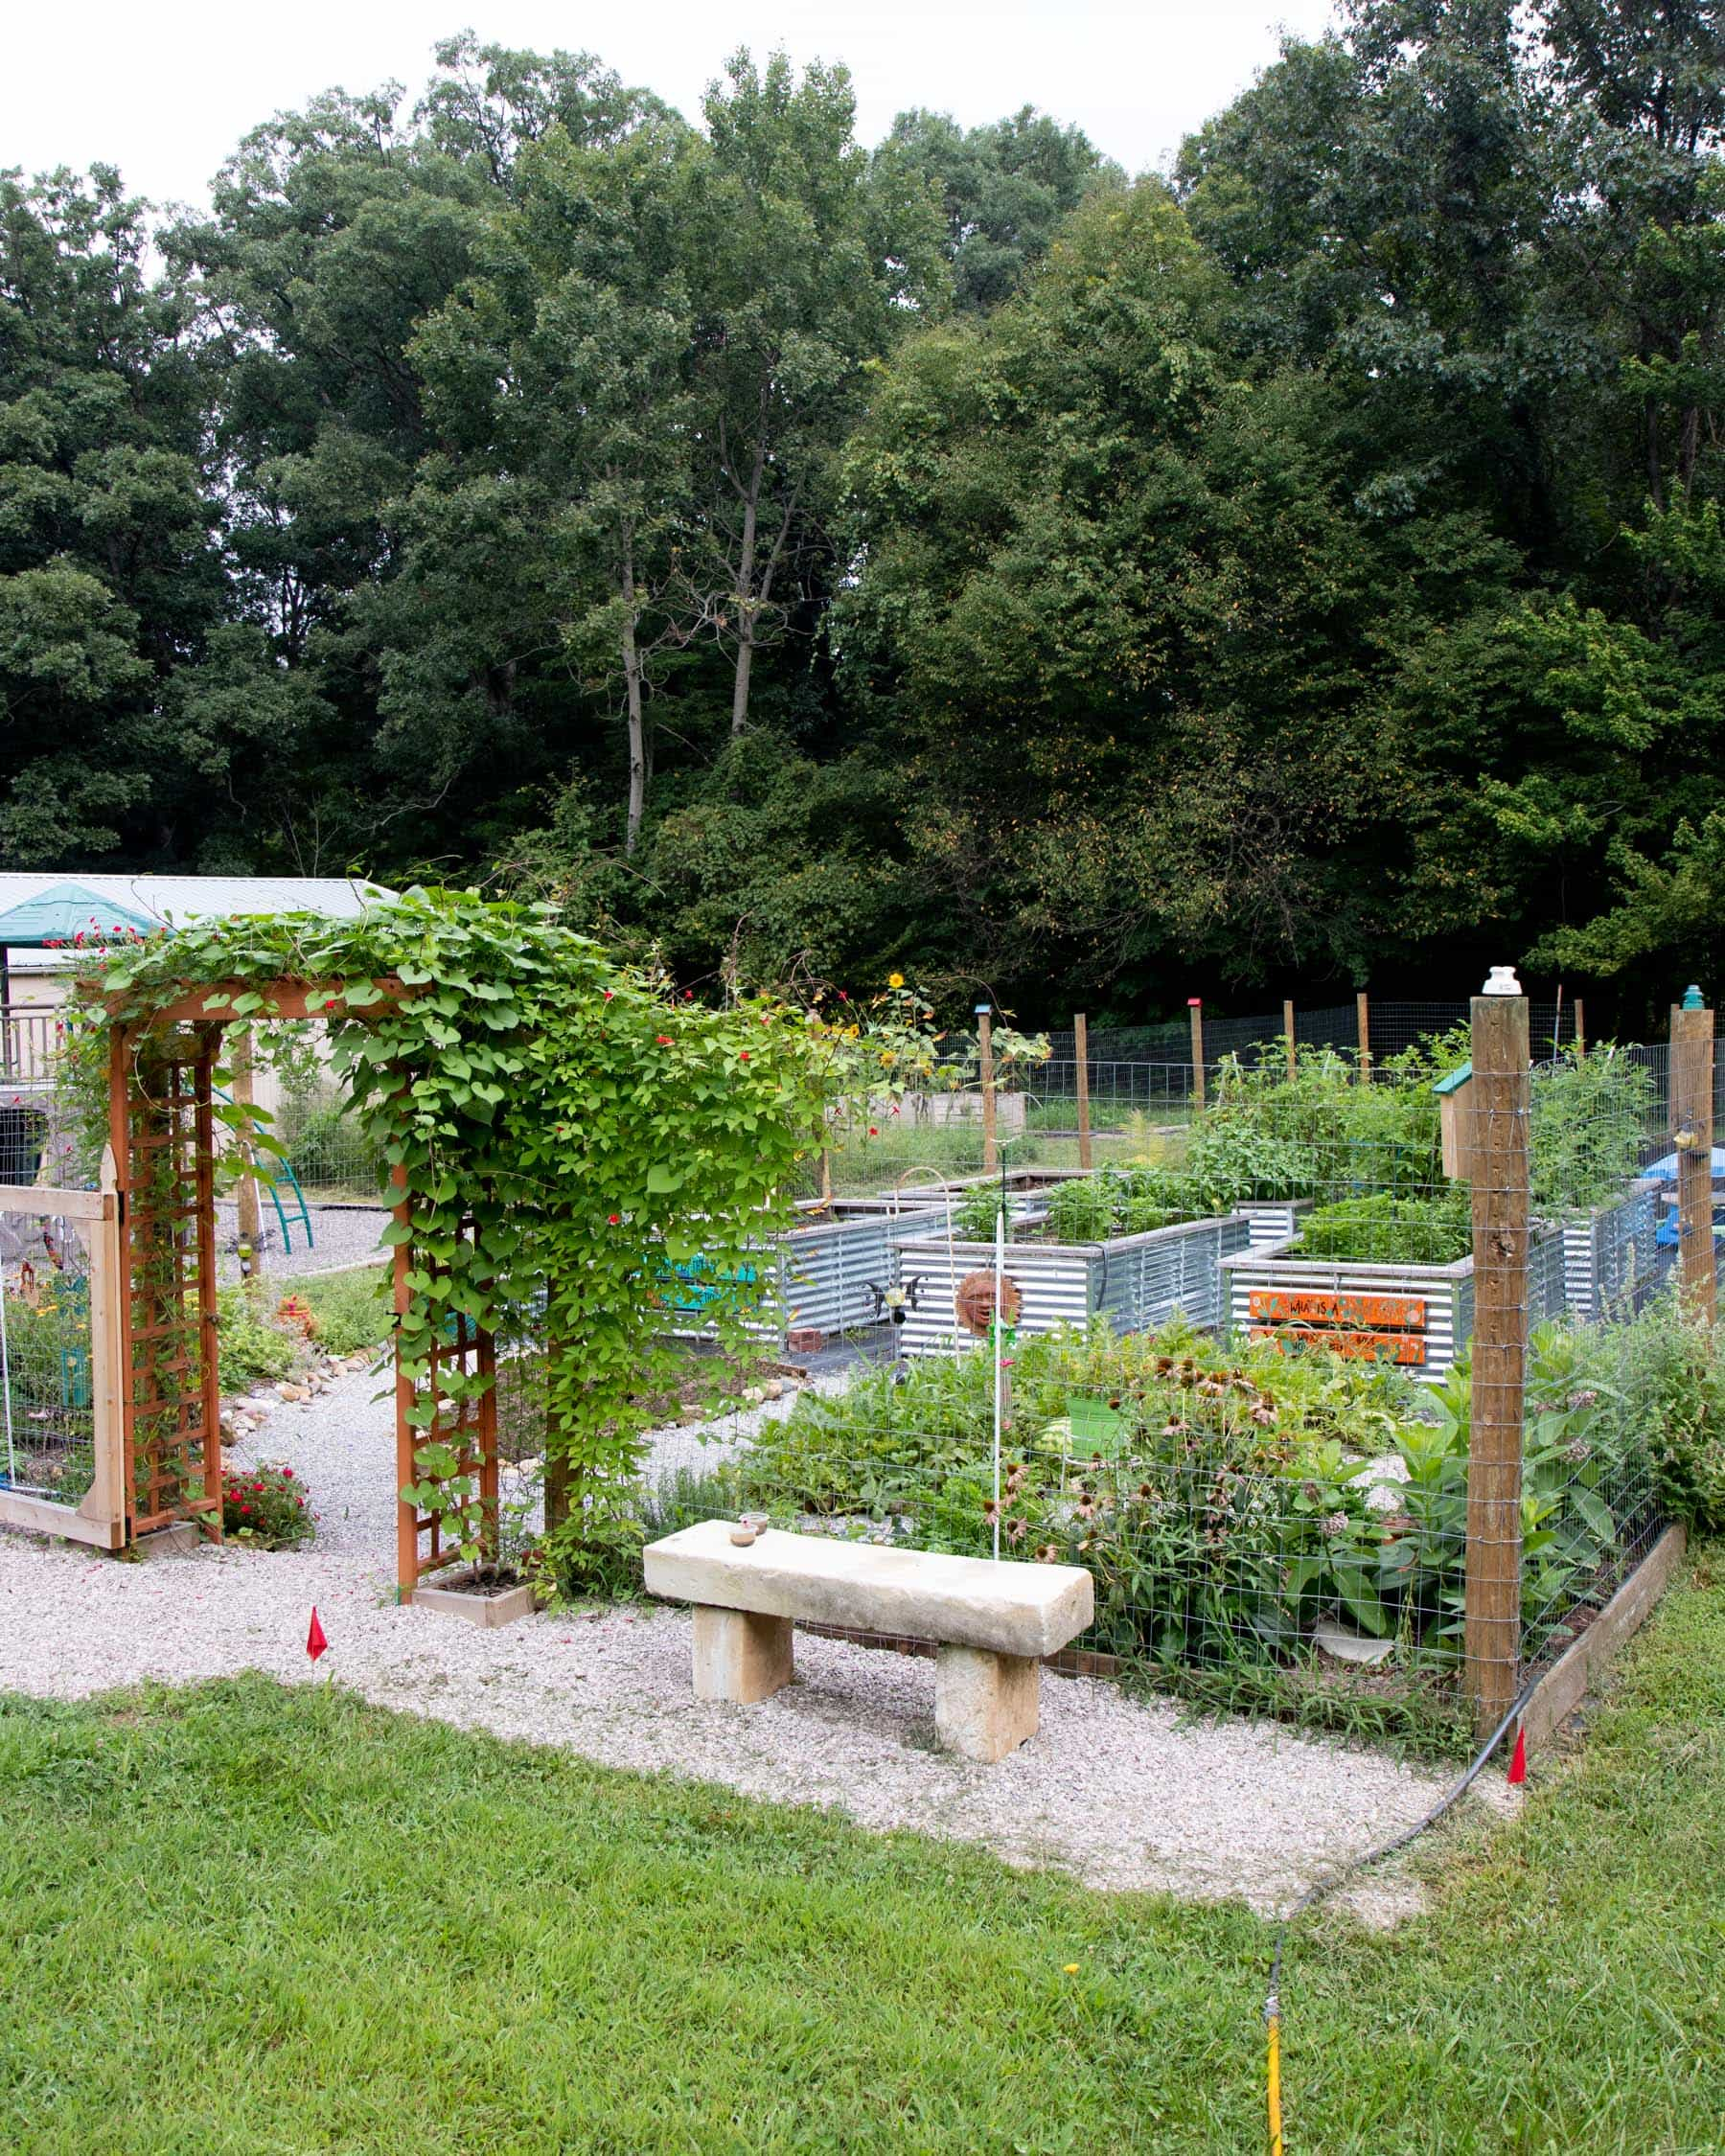 A fenced in vegetable garden